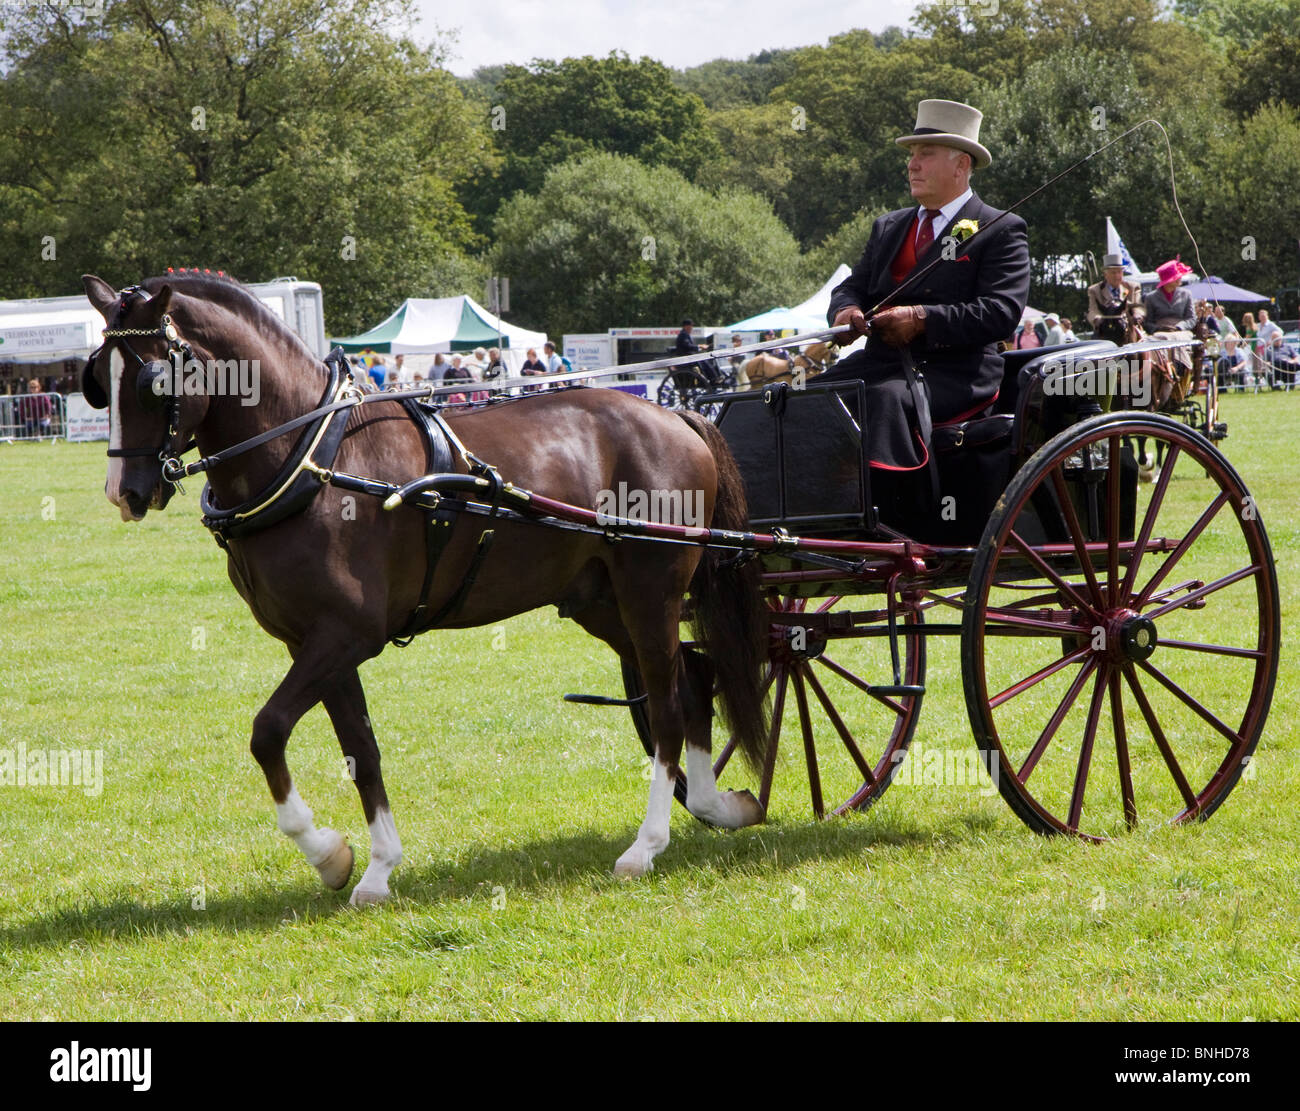 Entrant in the private light driving competition, Cranleigh Show 2009 - Stock Image